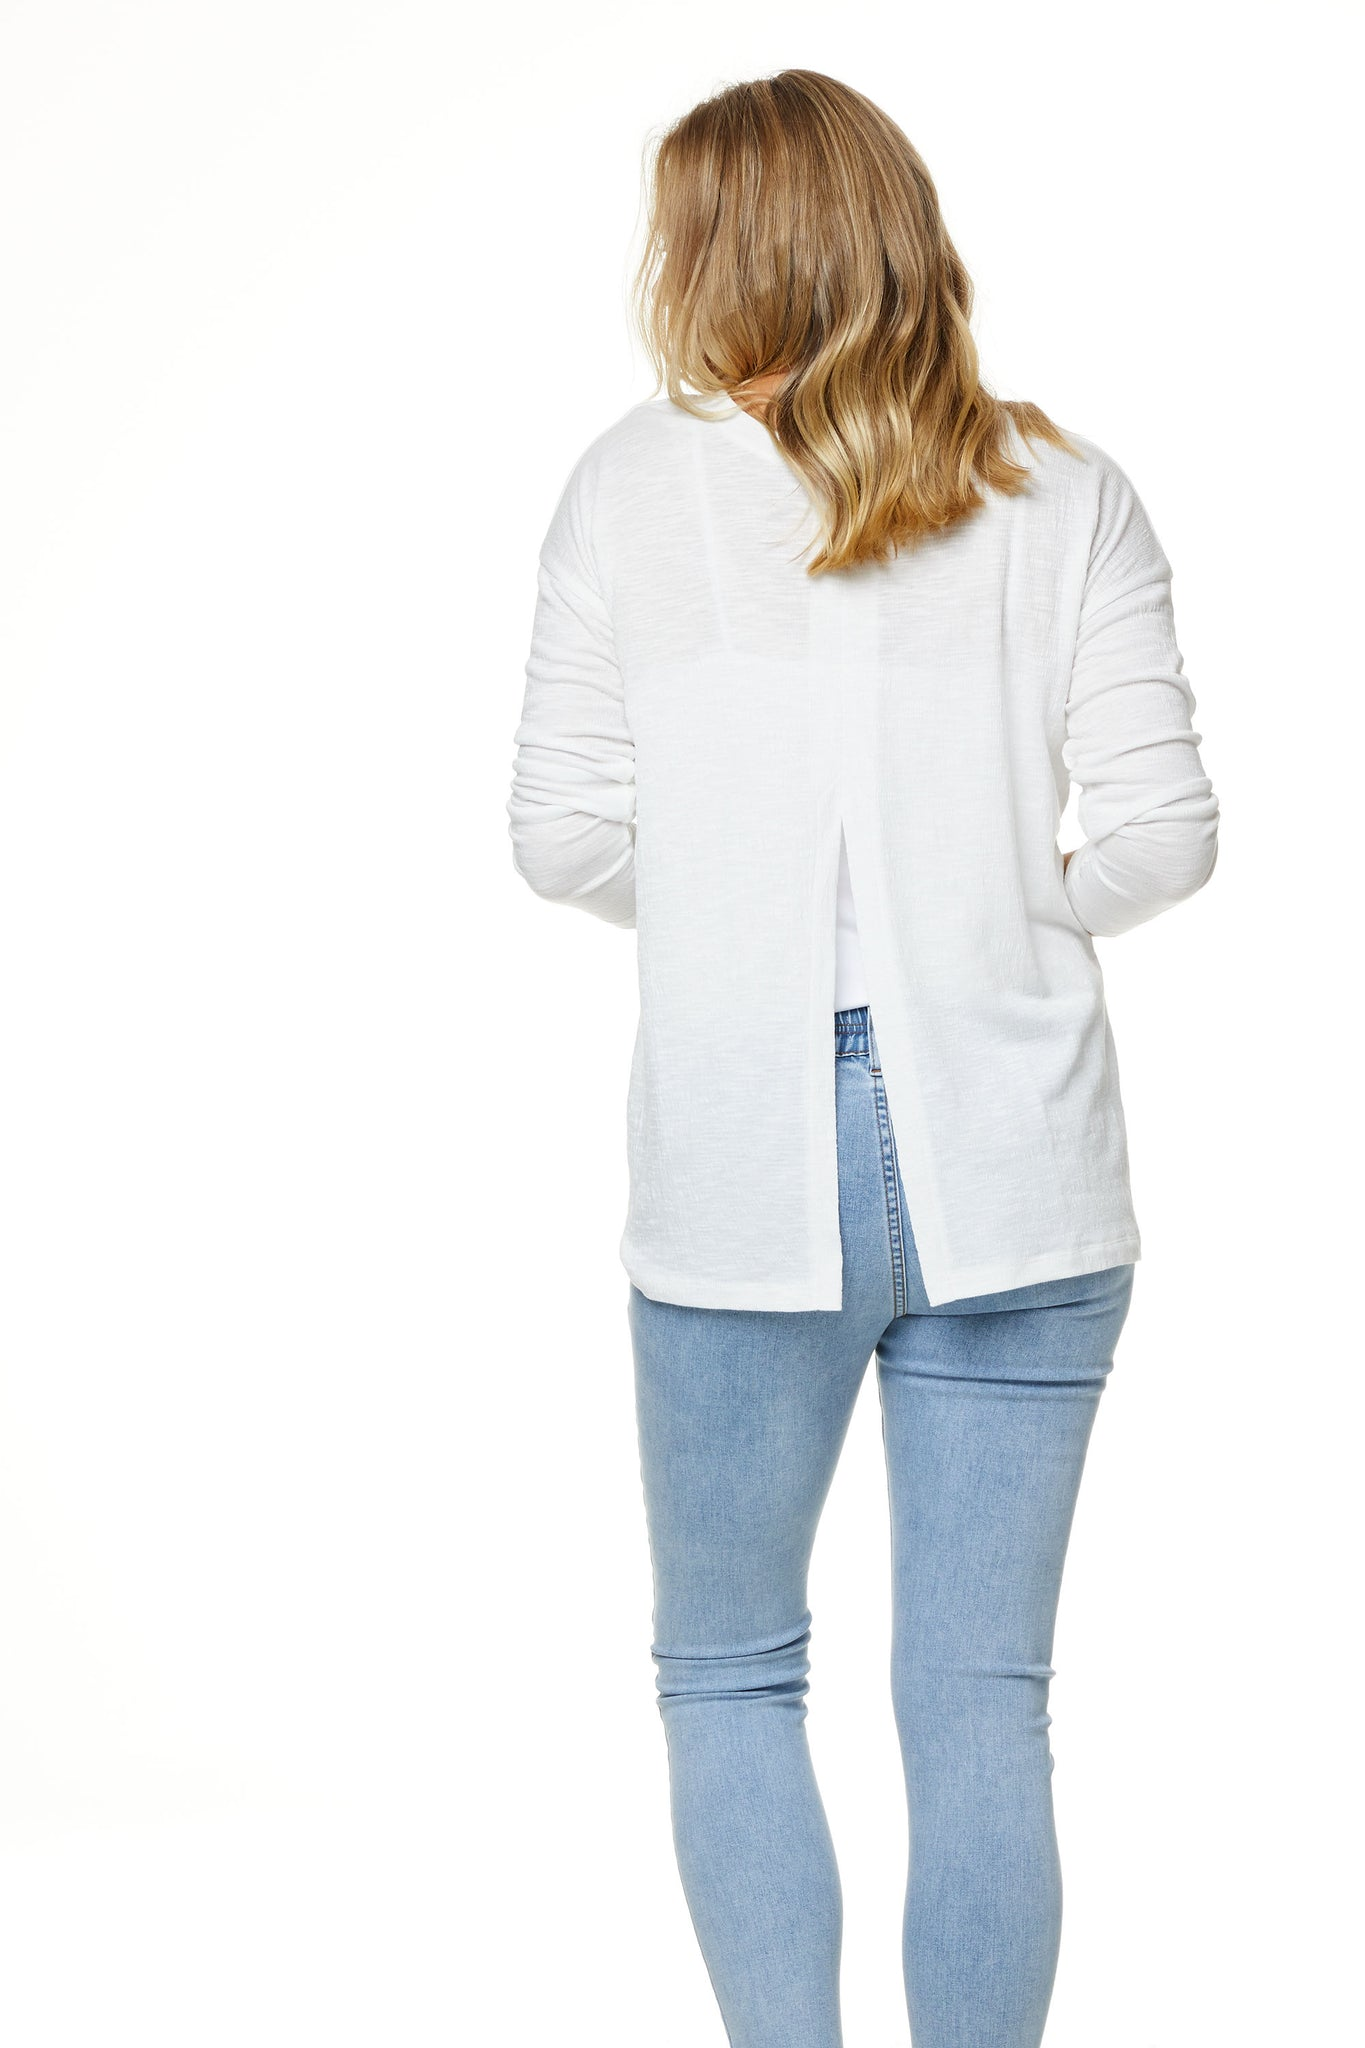 Maternity Long Sleeve Top White Image 10